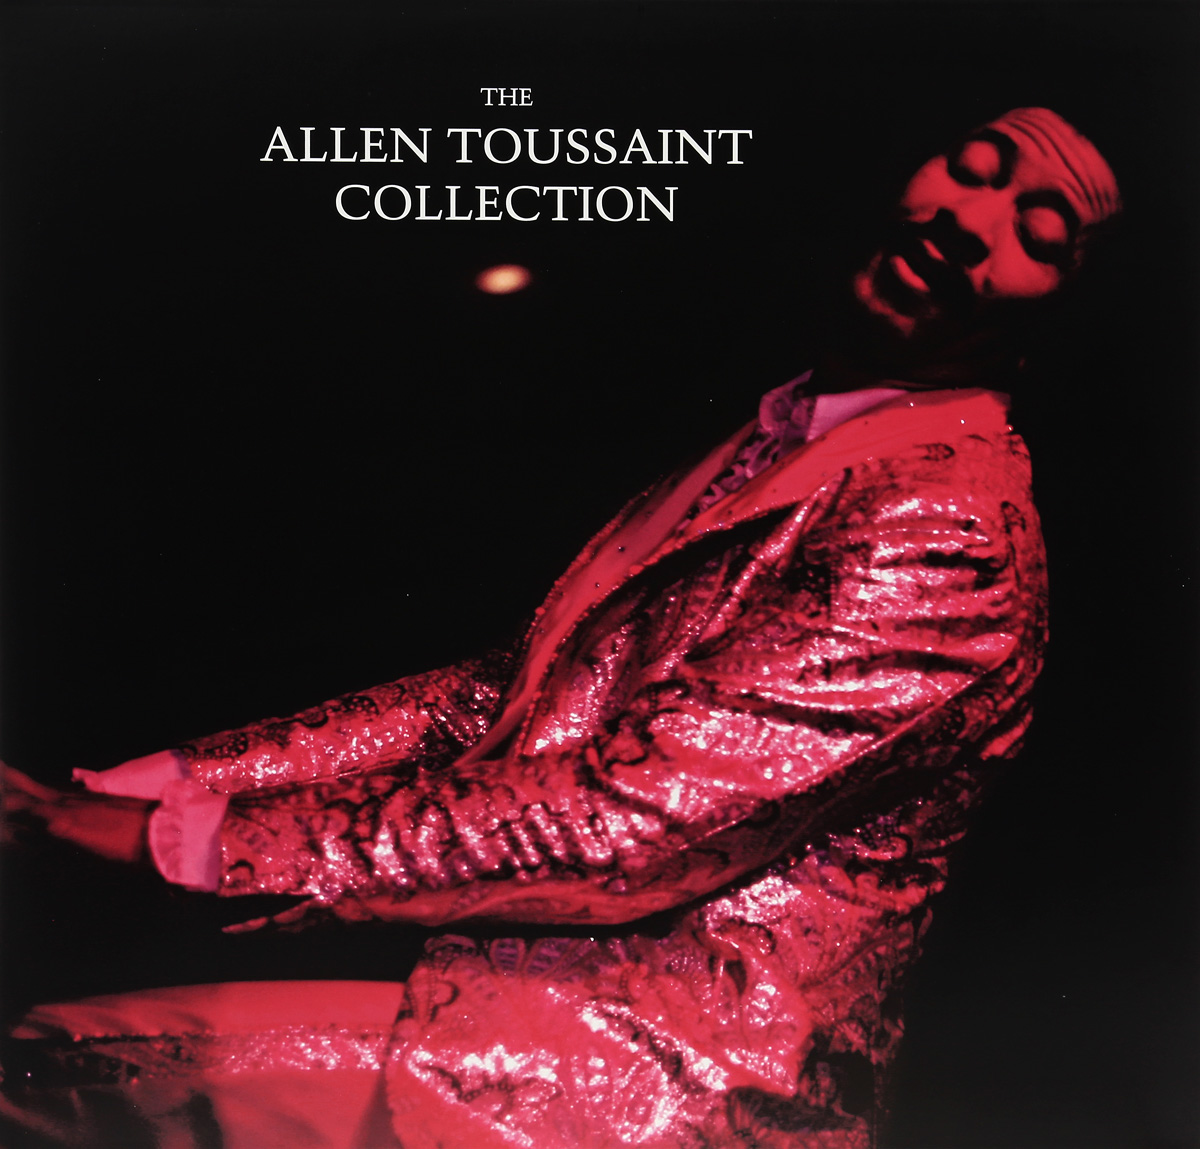 Аллен Тюссон Allen Toussaint. The Allen Toussaint Collection (LP) tony allen tony allen the source 2 lp